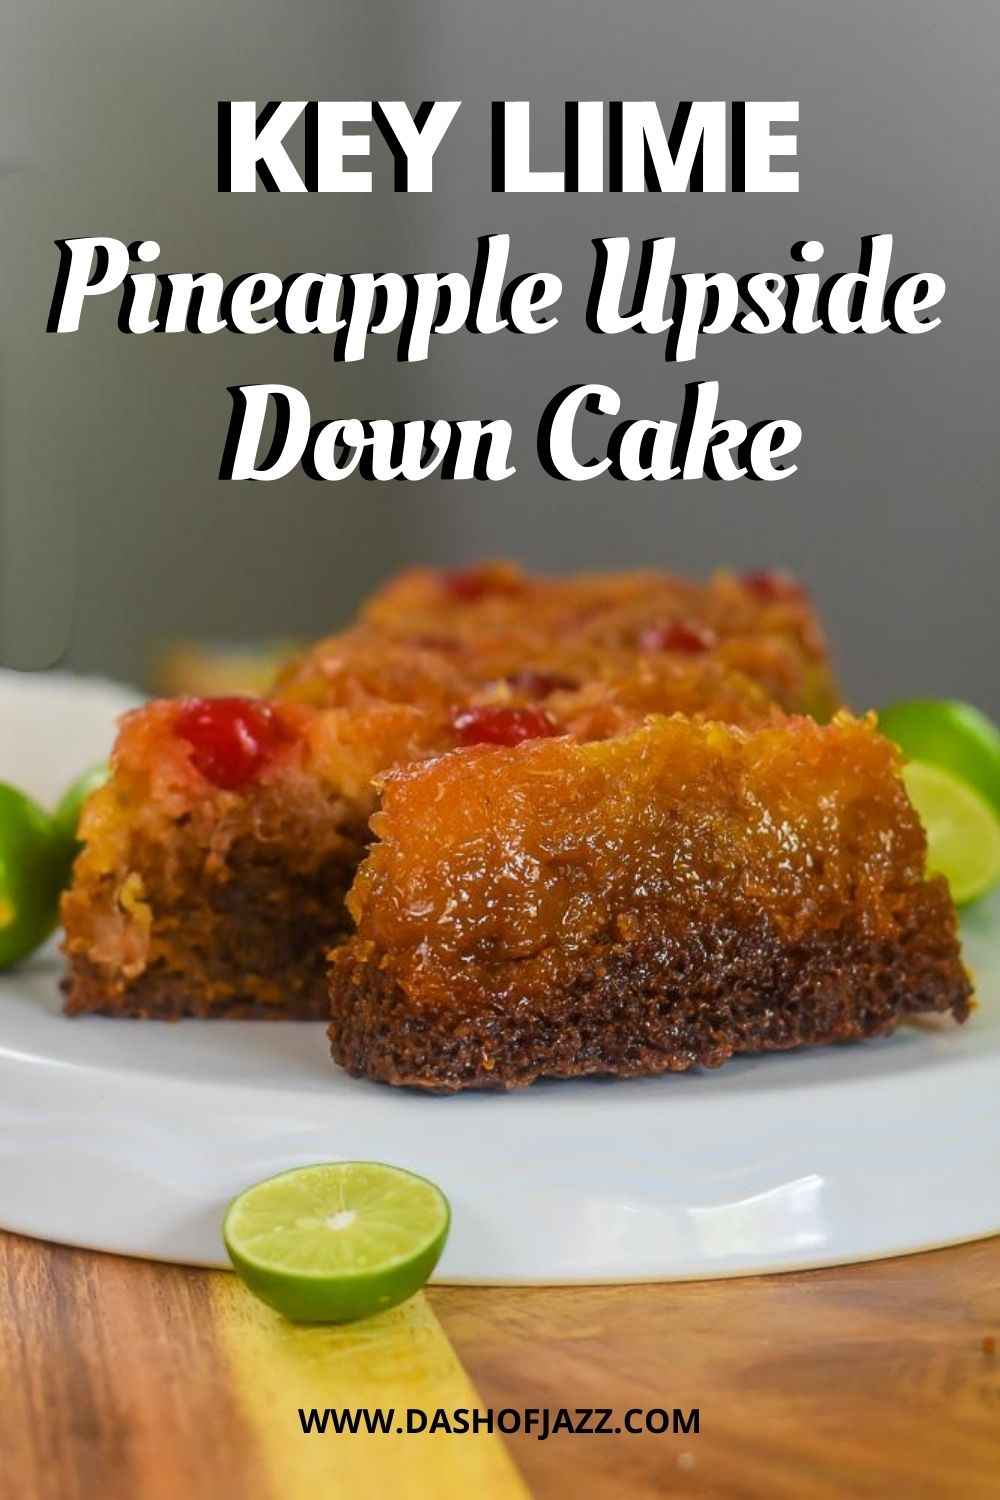 """side view of pineapple upside down cake with text overlay """"key lime pineapple upside down cake"""""""